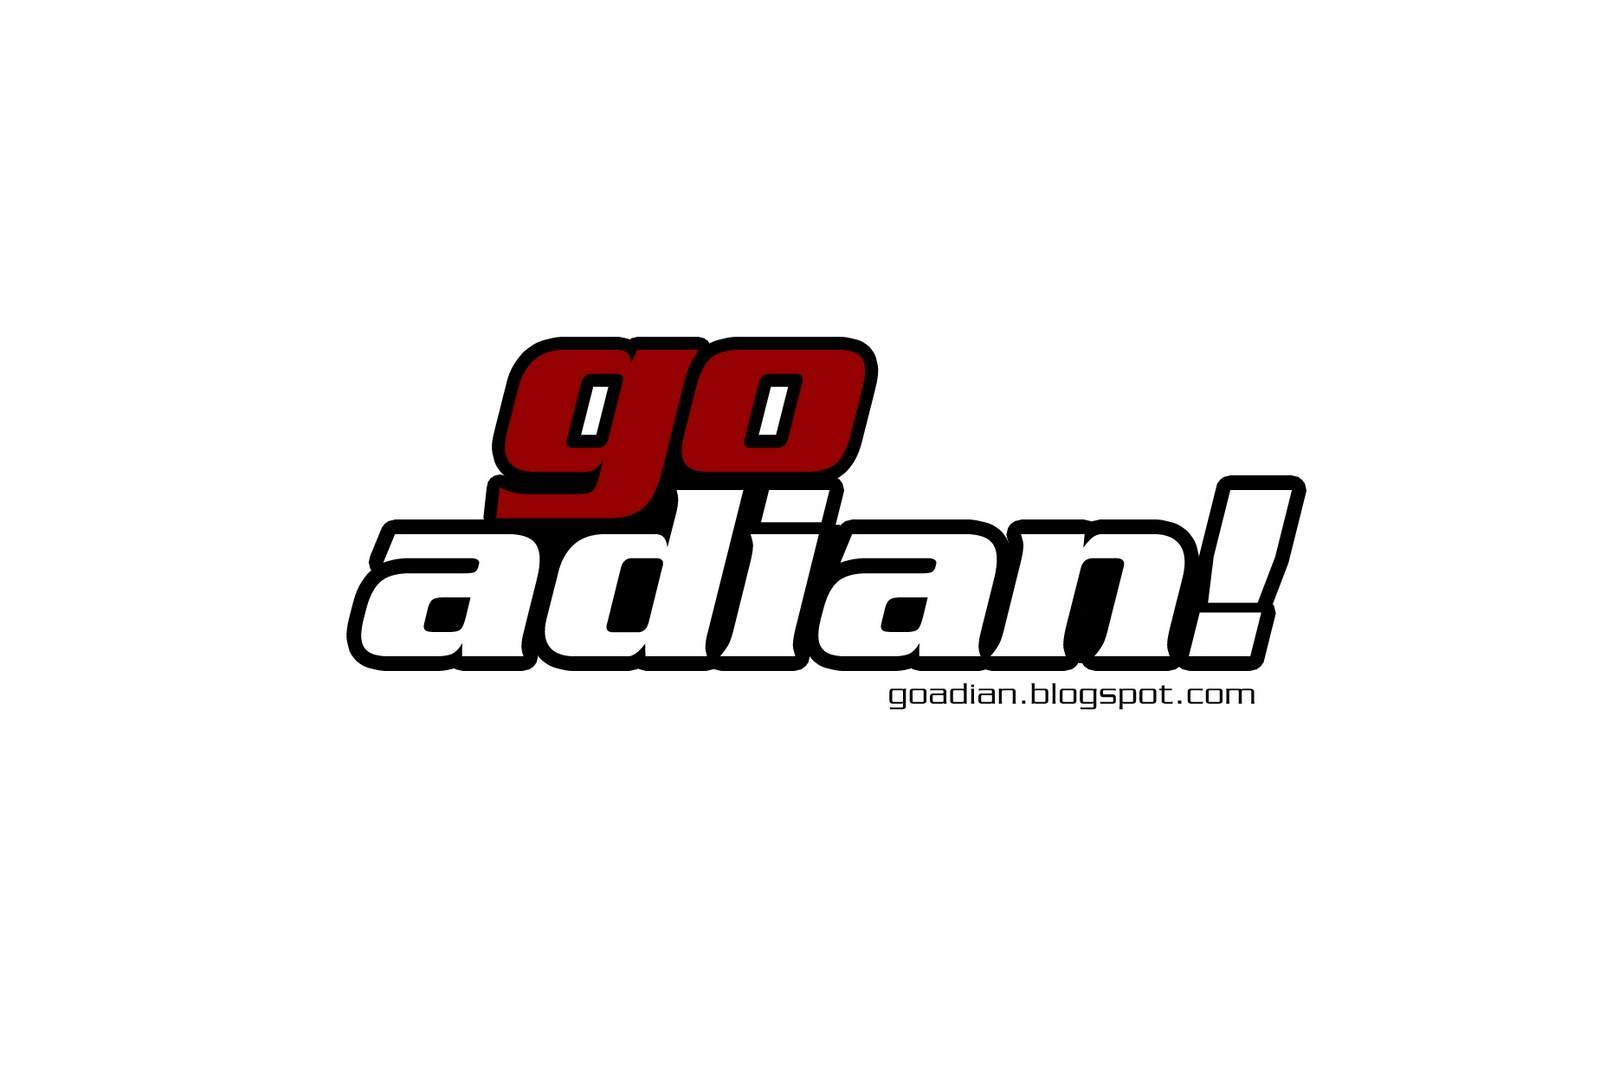 pm 330 requirements for adiana